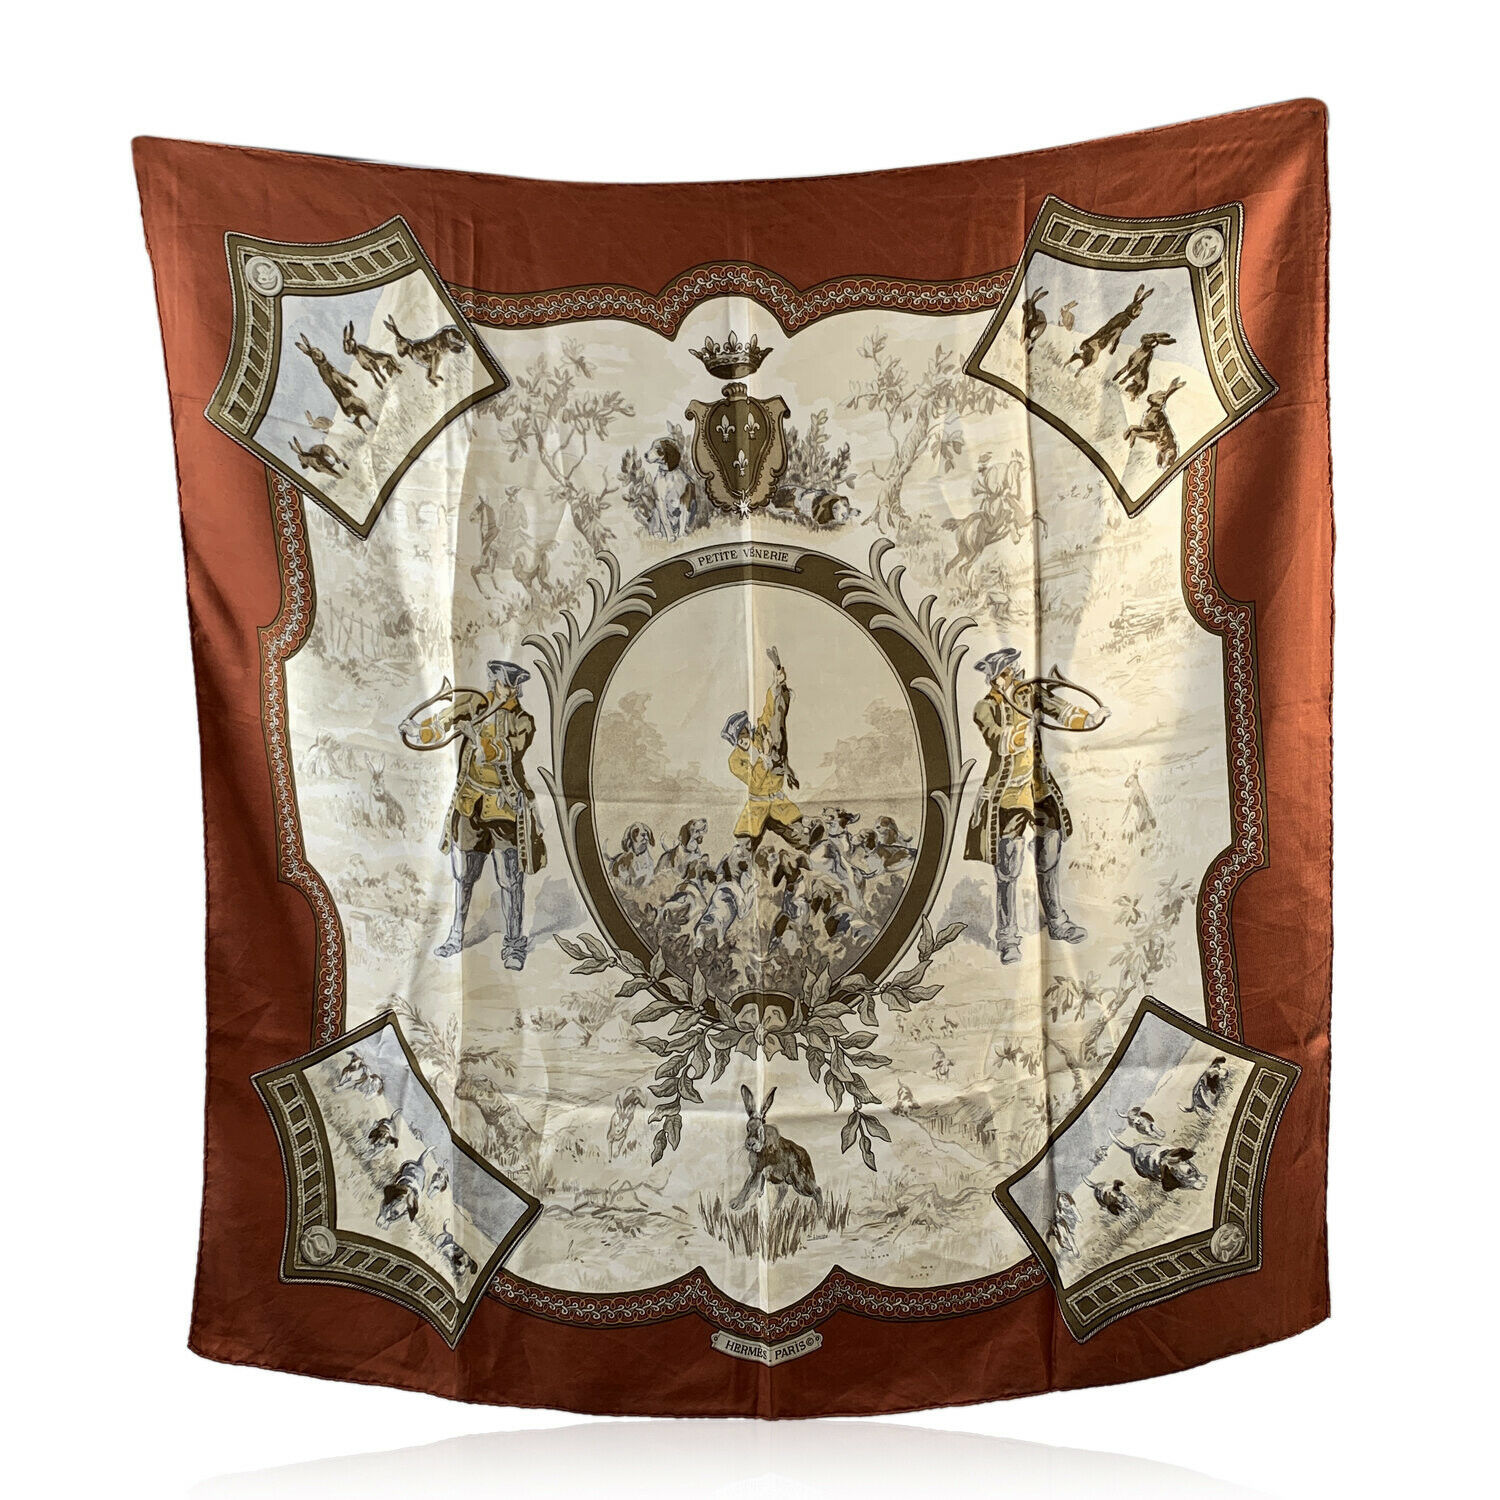 Primary image for Authentic Hermes Vintage Silk Scarf Petite Venerie 1968 Charles Jean Hallo Brown